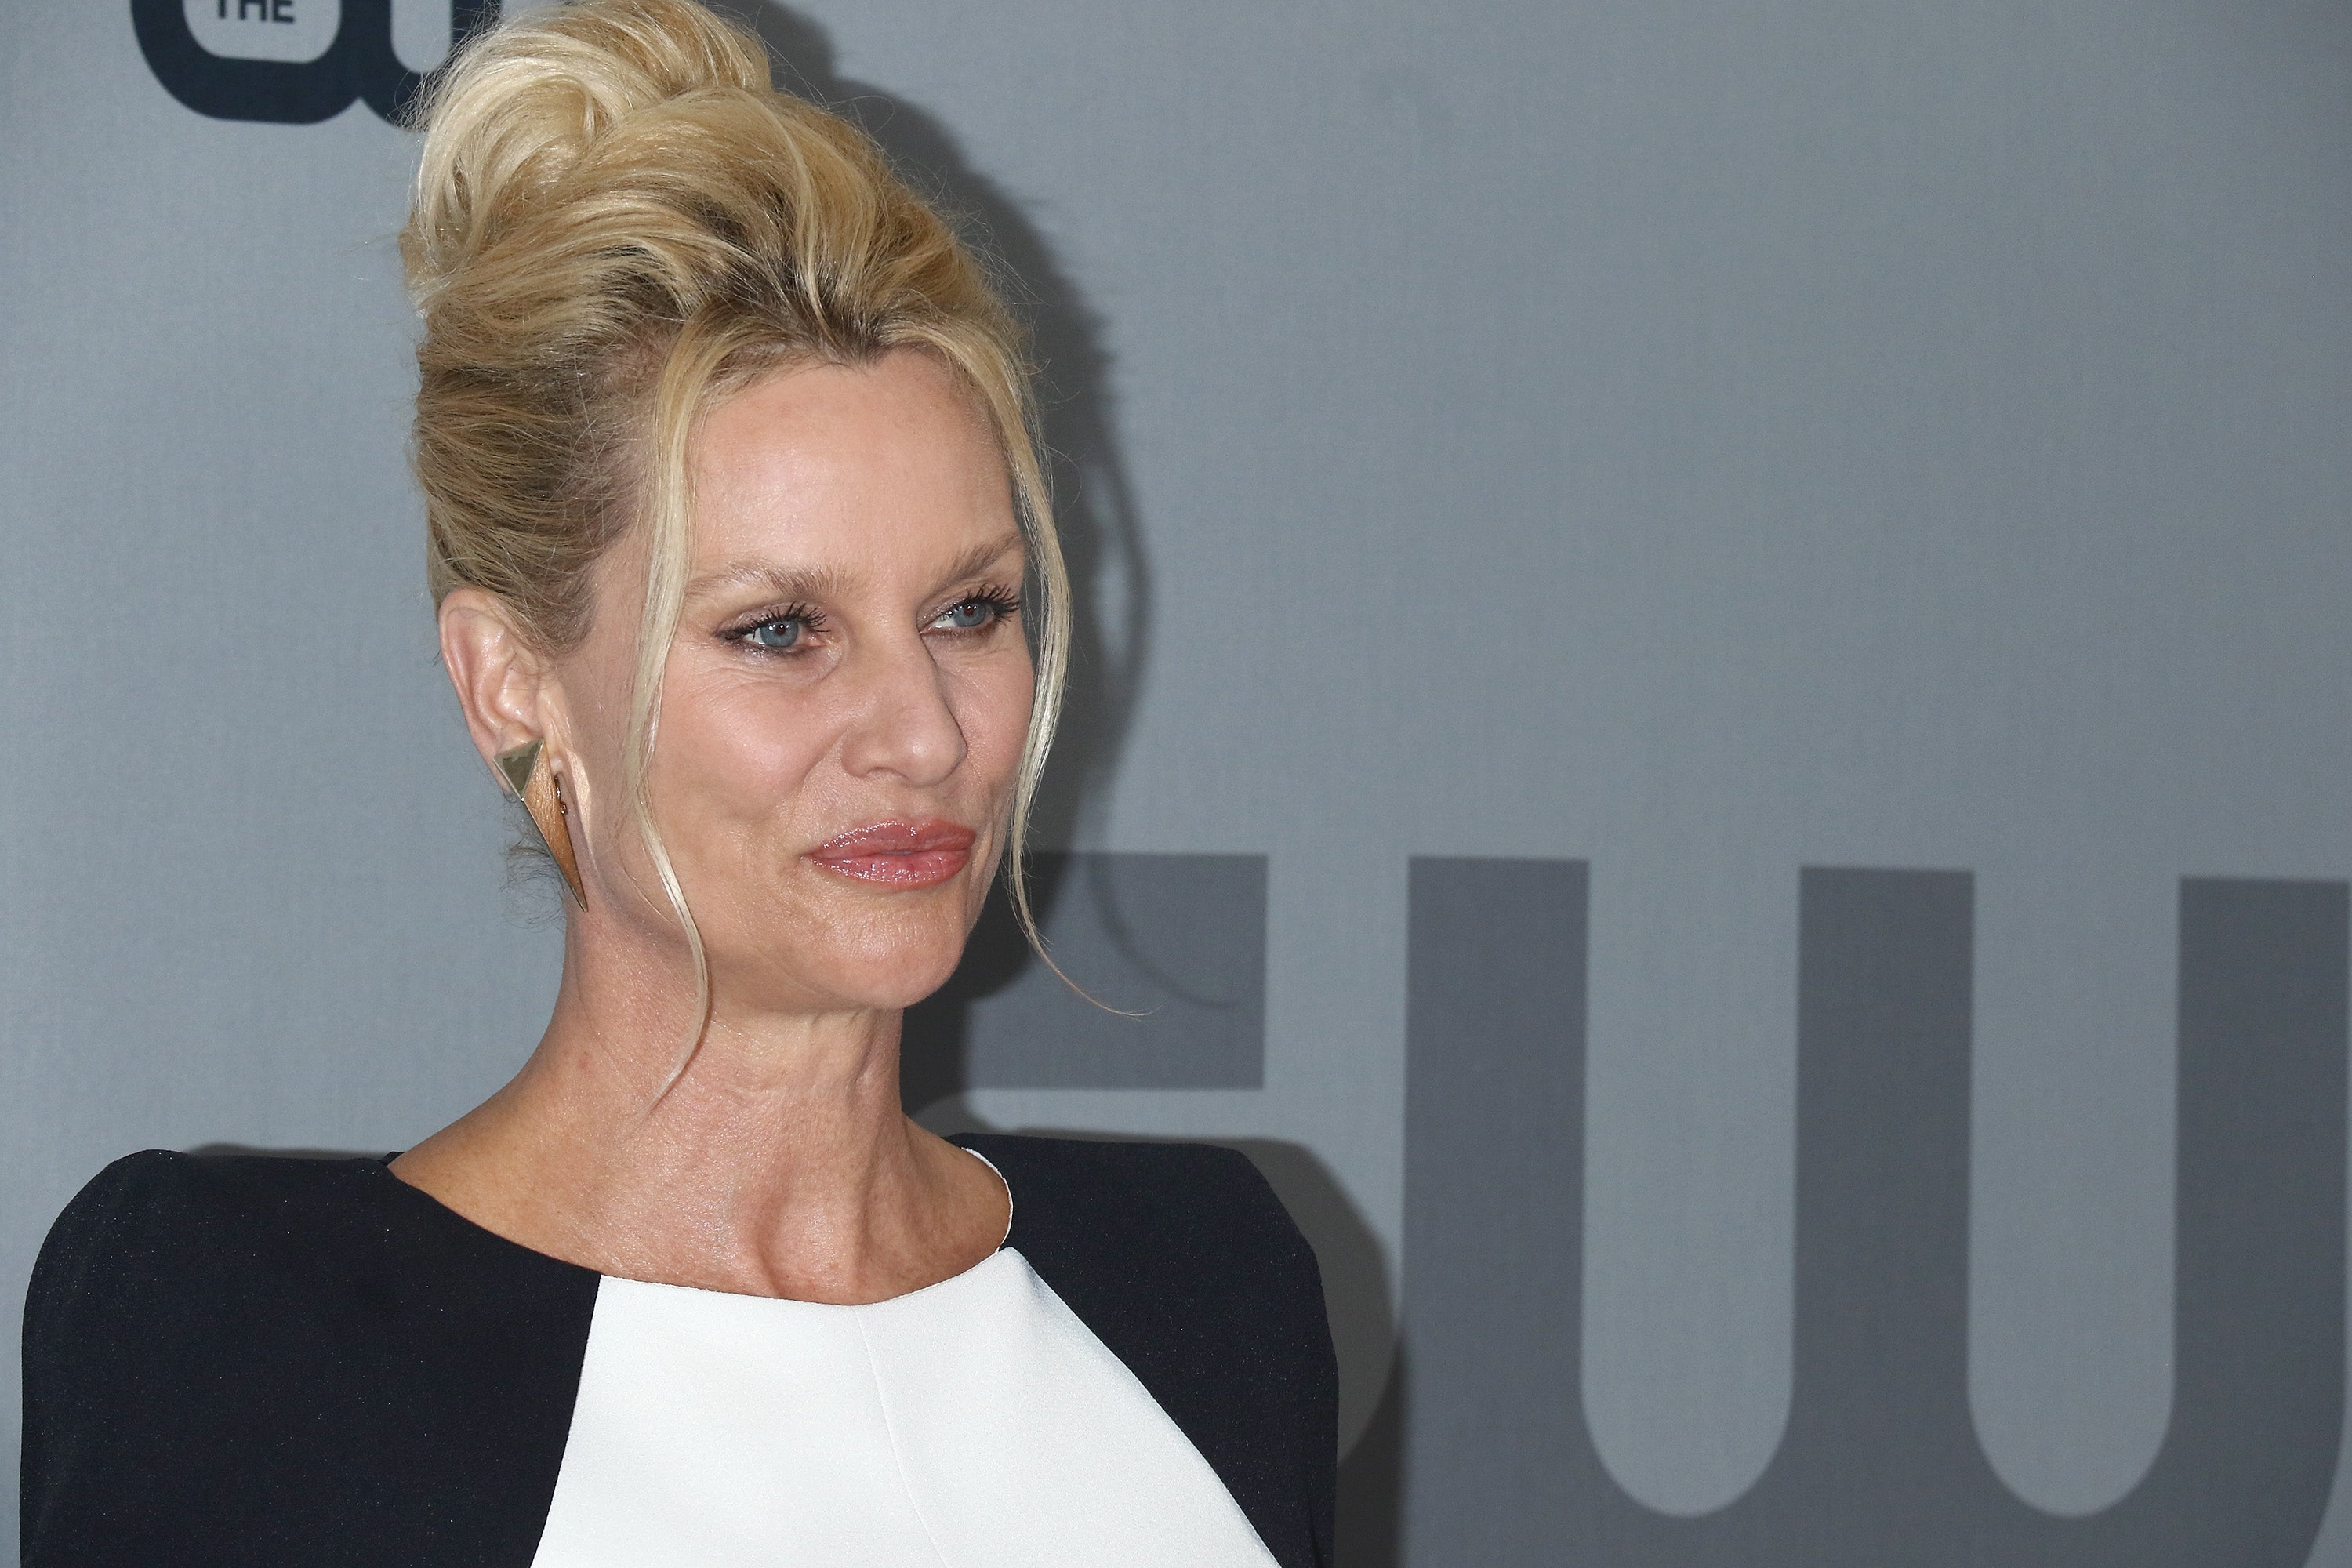 Instagram Nicollette Sheridan nudes (58 photos), Ass, Is a cute, Boobs, braless 2015